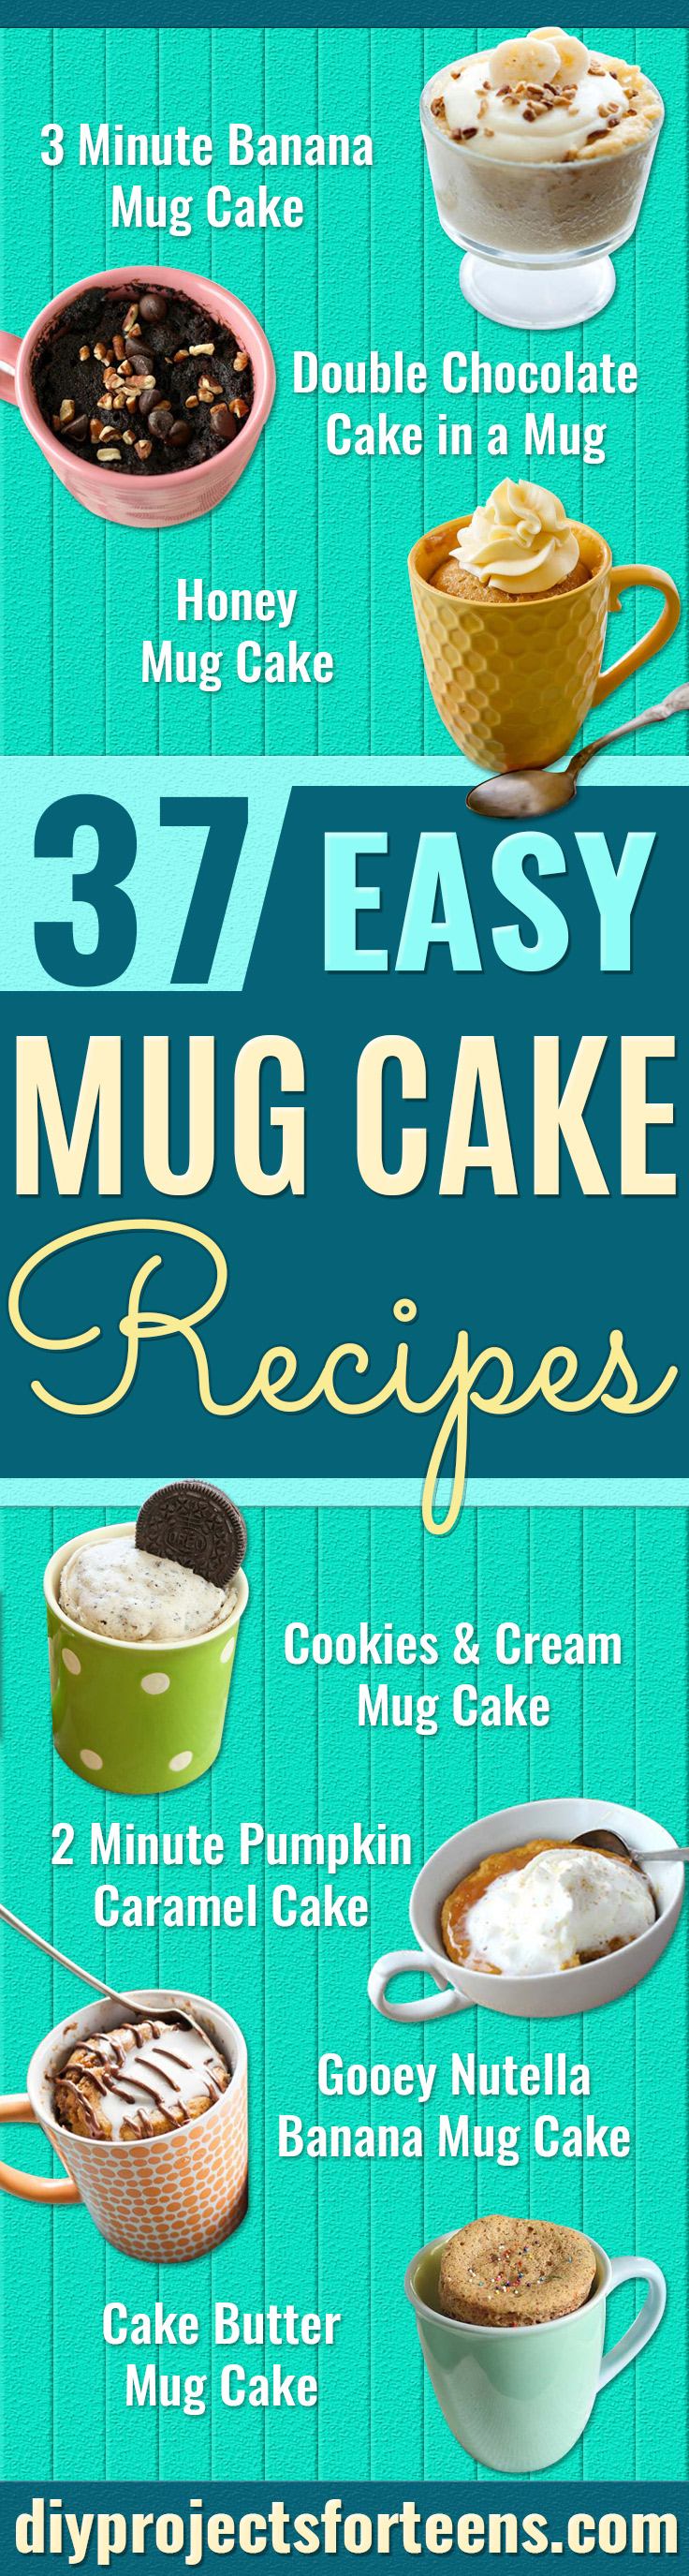 Easy Mug Cake Recipes - Best Microwave Cakes and Ideas for Baking Cake in The Microwave - Chocolate, Vanilla, Healthy, Snickerdoodle, Peanut Butter, Brownie and Nutella - Step by Step Tutorials and Instructions - Best DIY Projects and Recipes for Teens and Teenagers